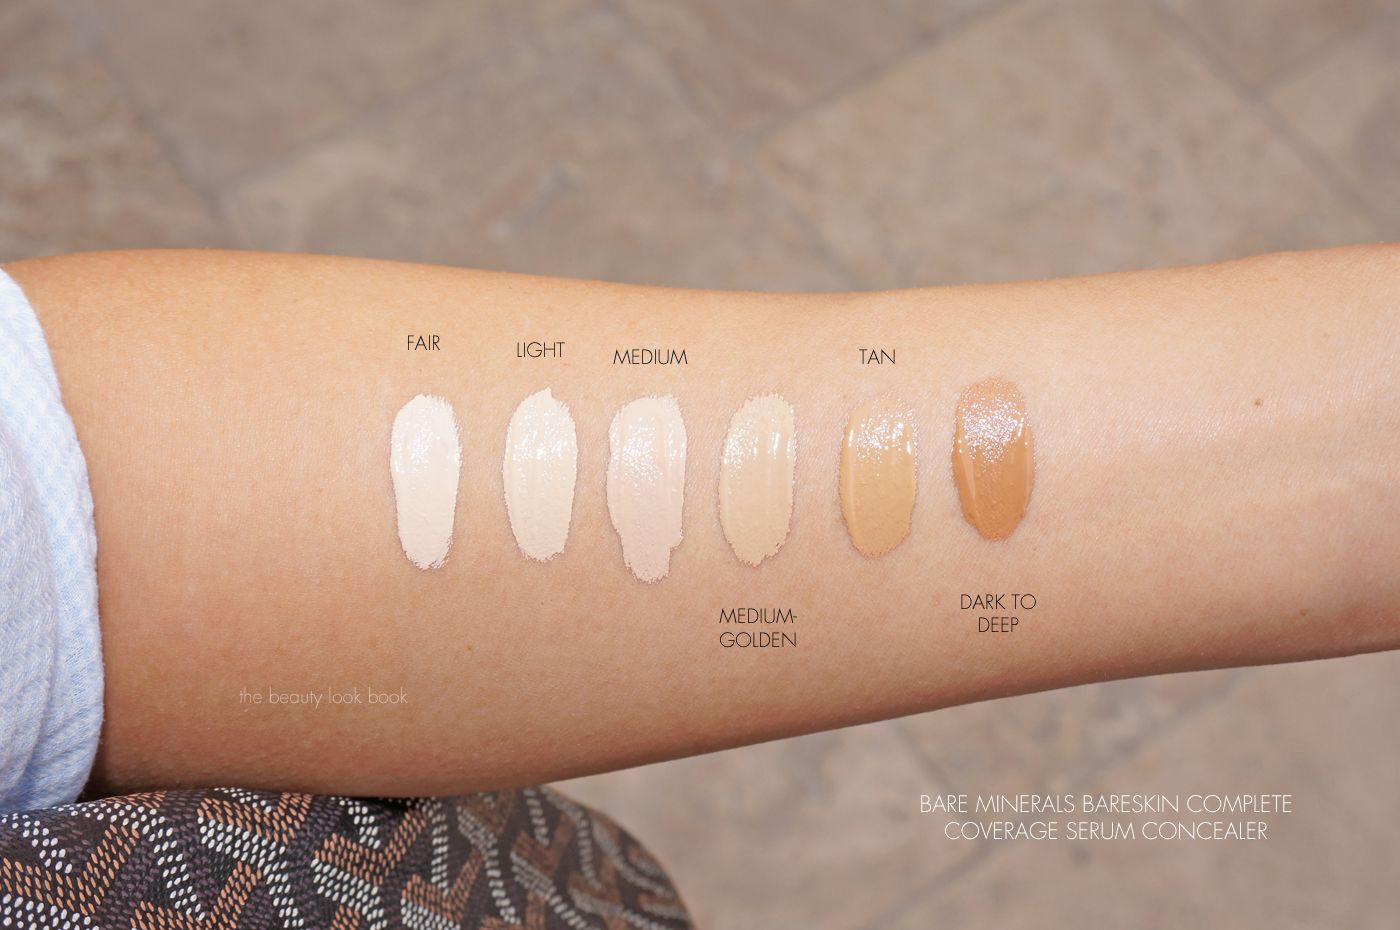 Pin by SyDnEy on Face things Bare minerals concealer